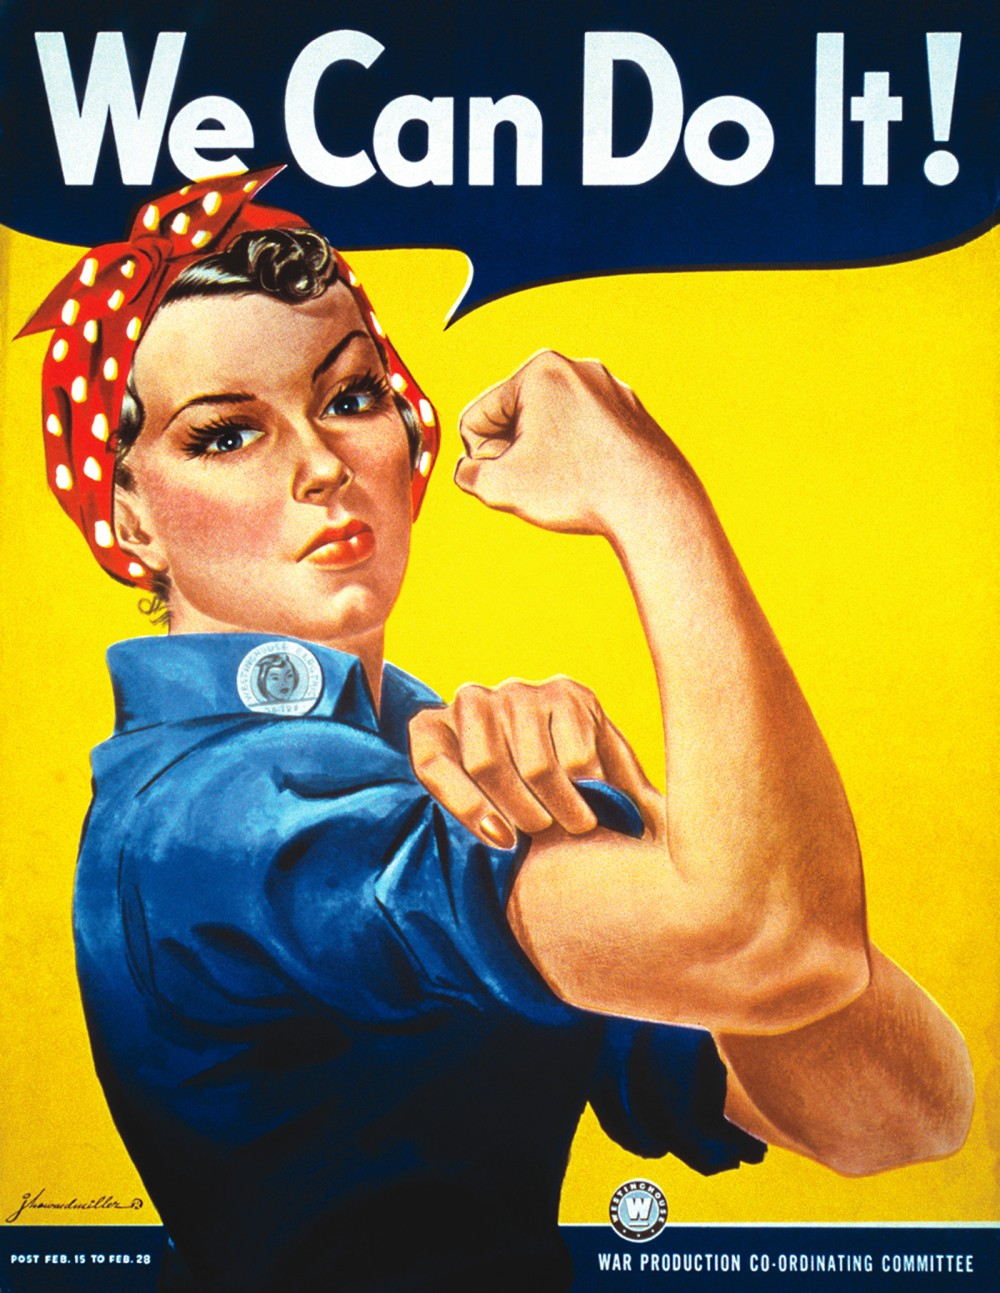 Rosie the Riveter poster. A woman flexes her arm and says We Can Do It.